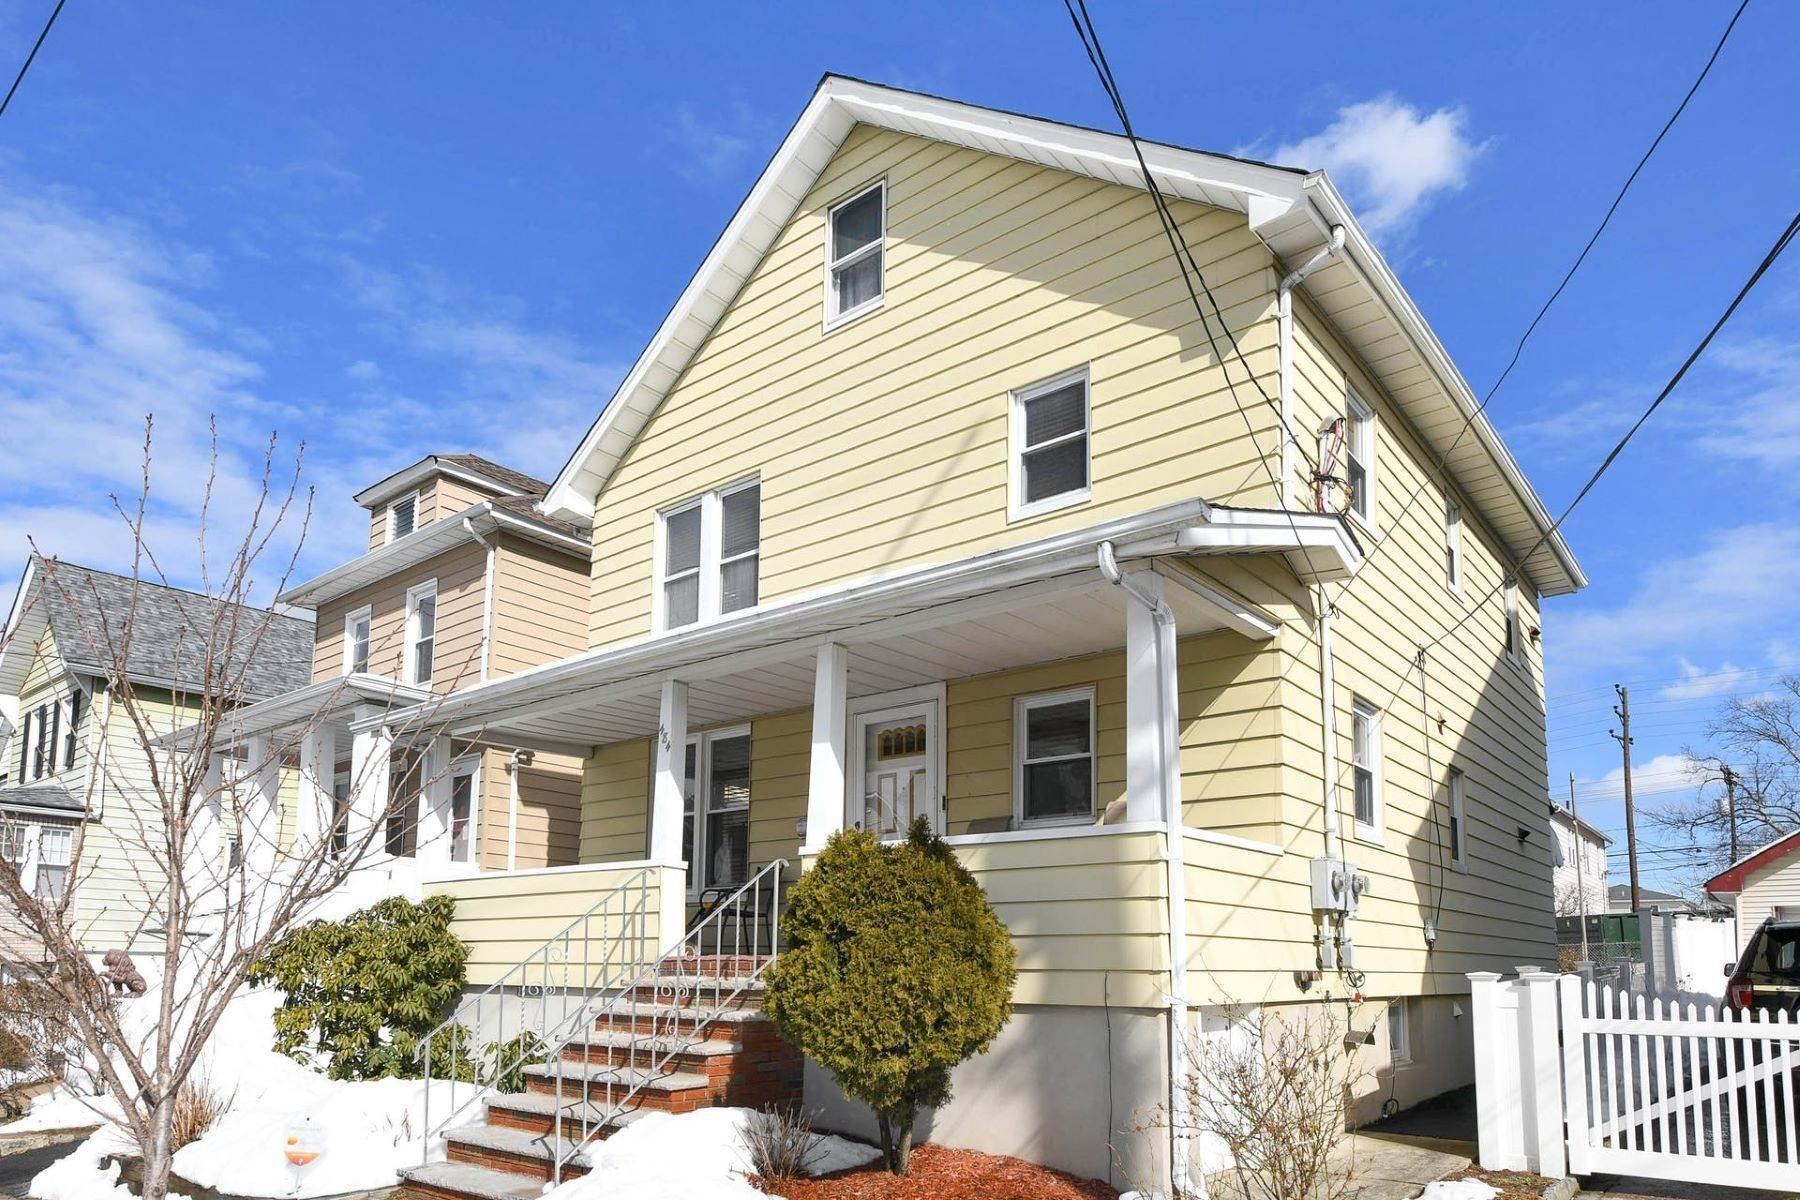 Multi-Family Homes for Sale at Two Family Home 484 Washington Ave Hackensack, New Jersey 07601 United States